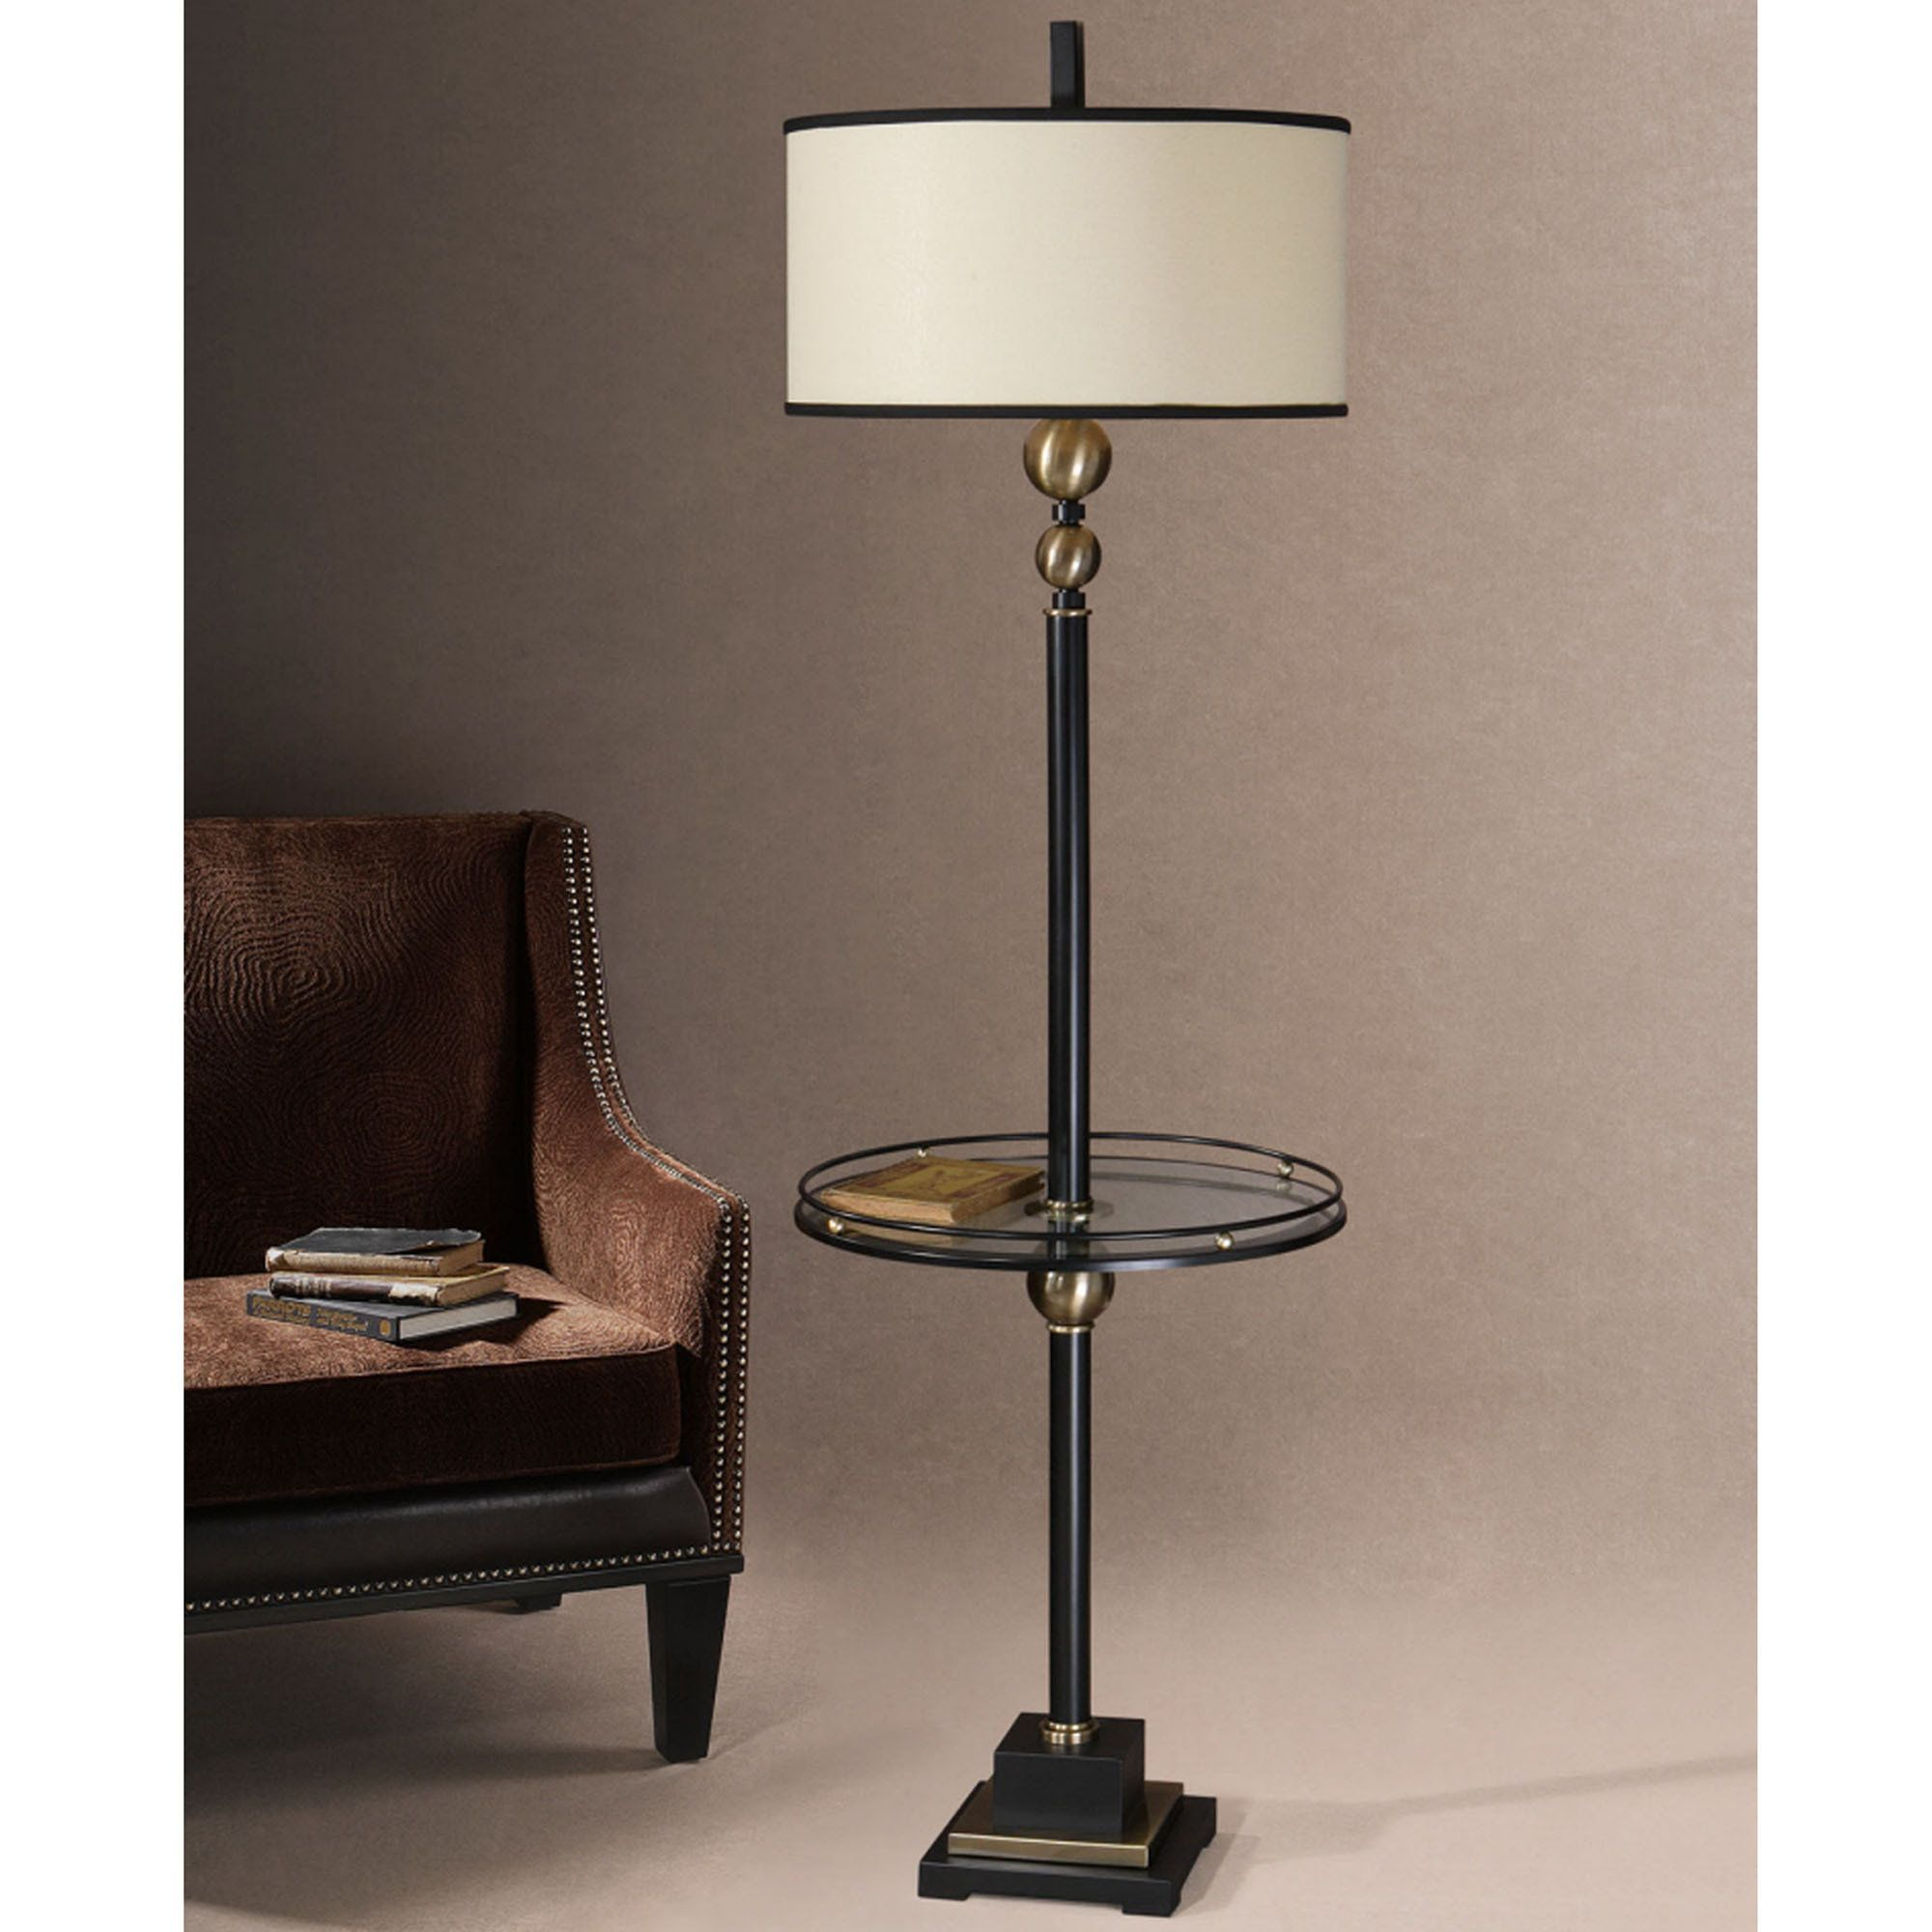 Joaquin Floor Lamp With Attached Glass Table Bodenlampe